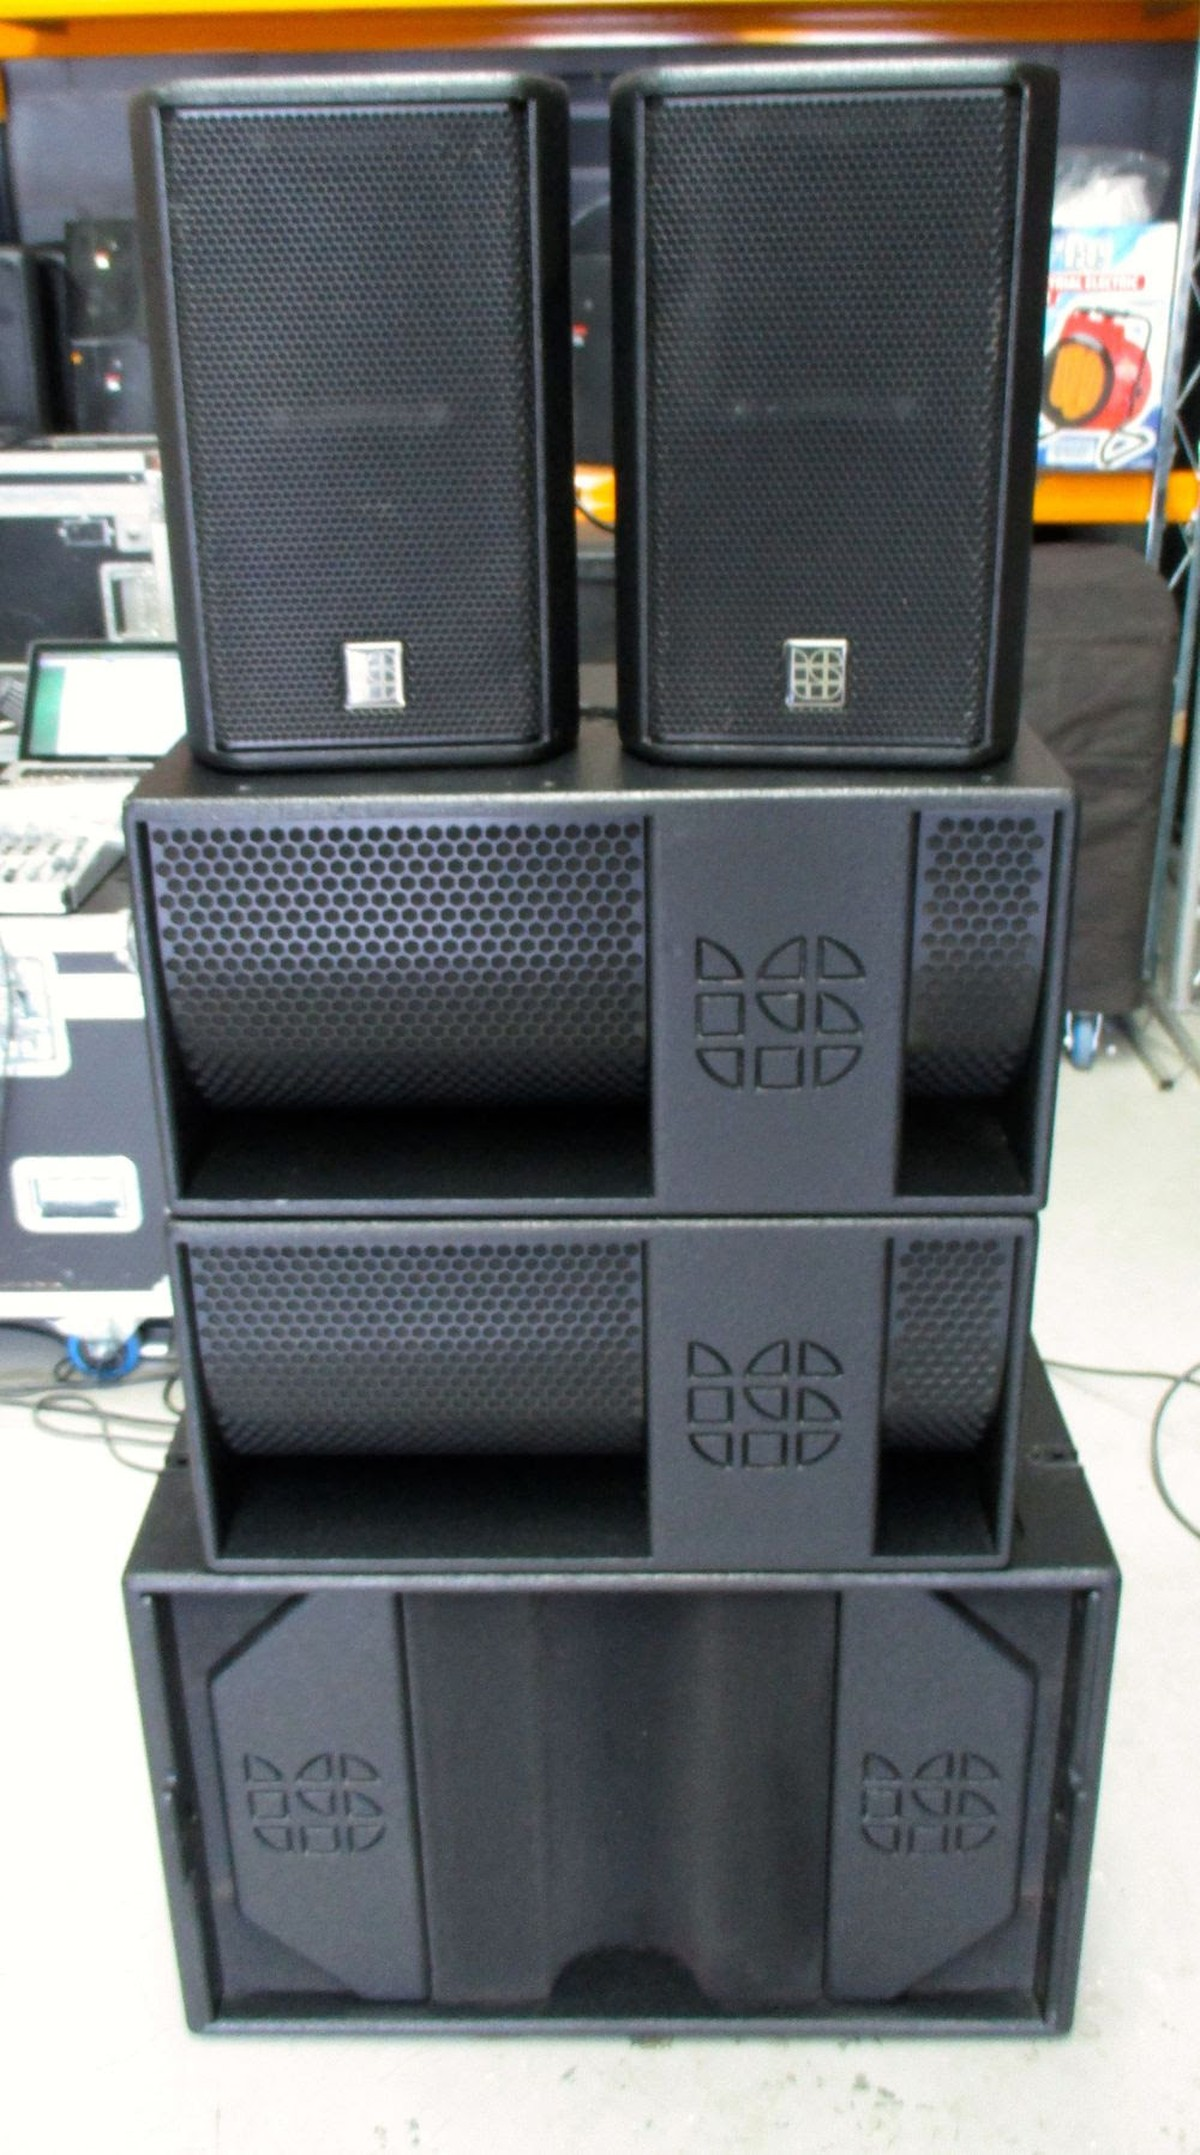 Used Cabinets For Sale >> Secondhand Sound and Lighting Equipment | PA Systems ...